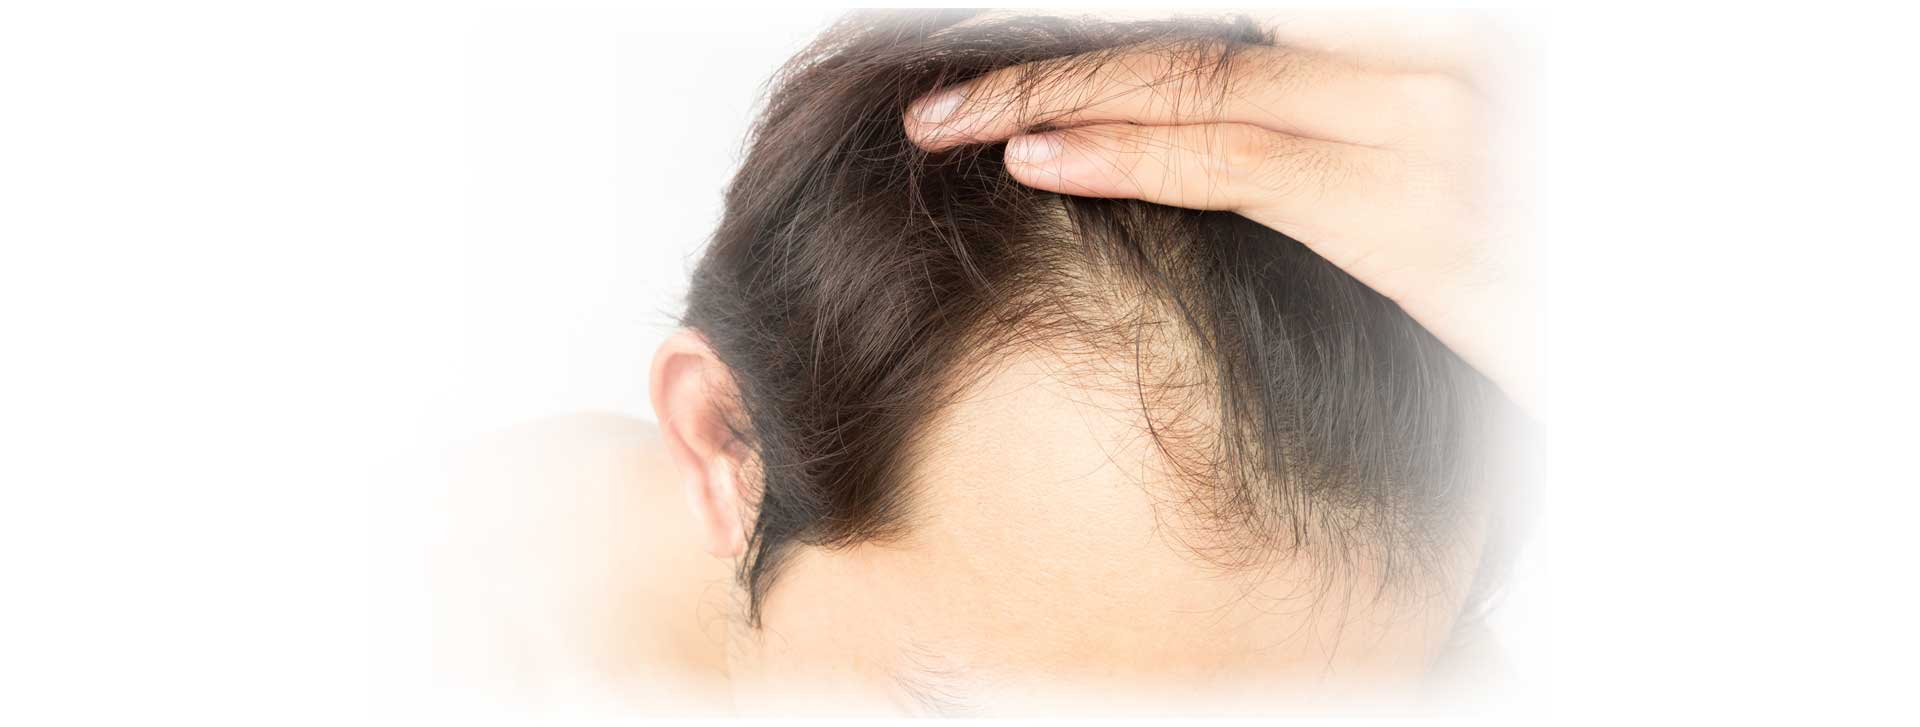 Featured image - Have you been thinking about getting a hair transplant